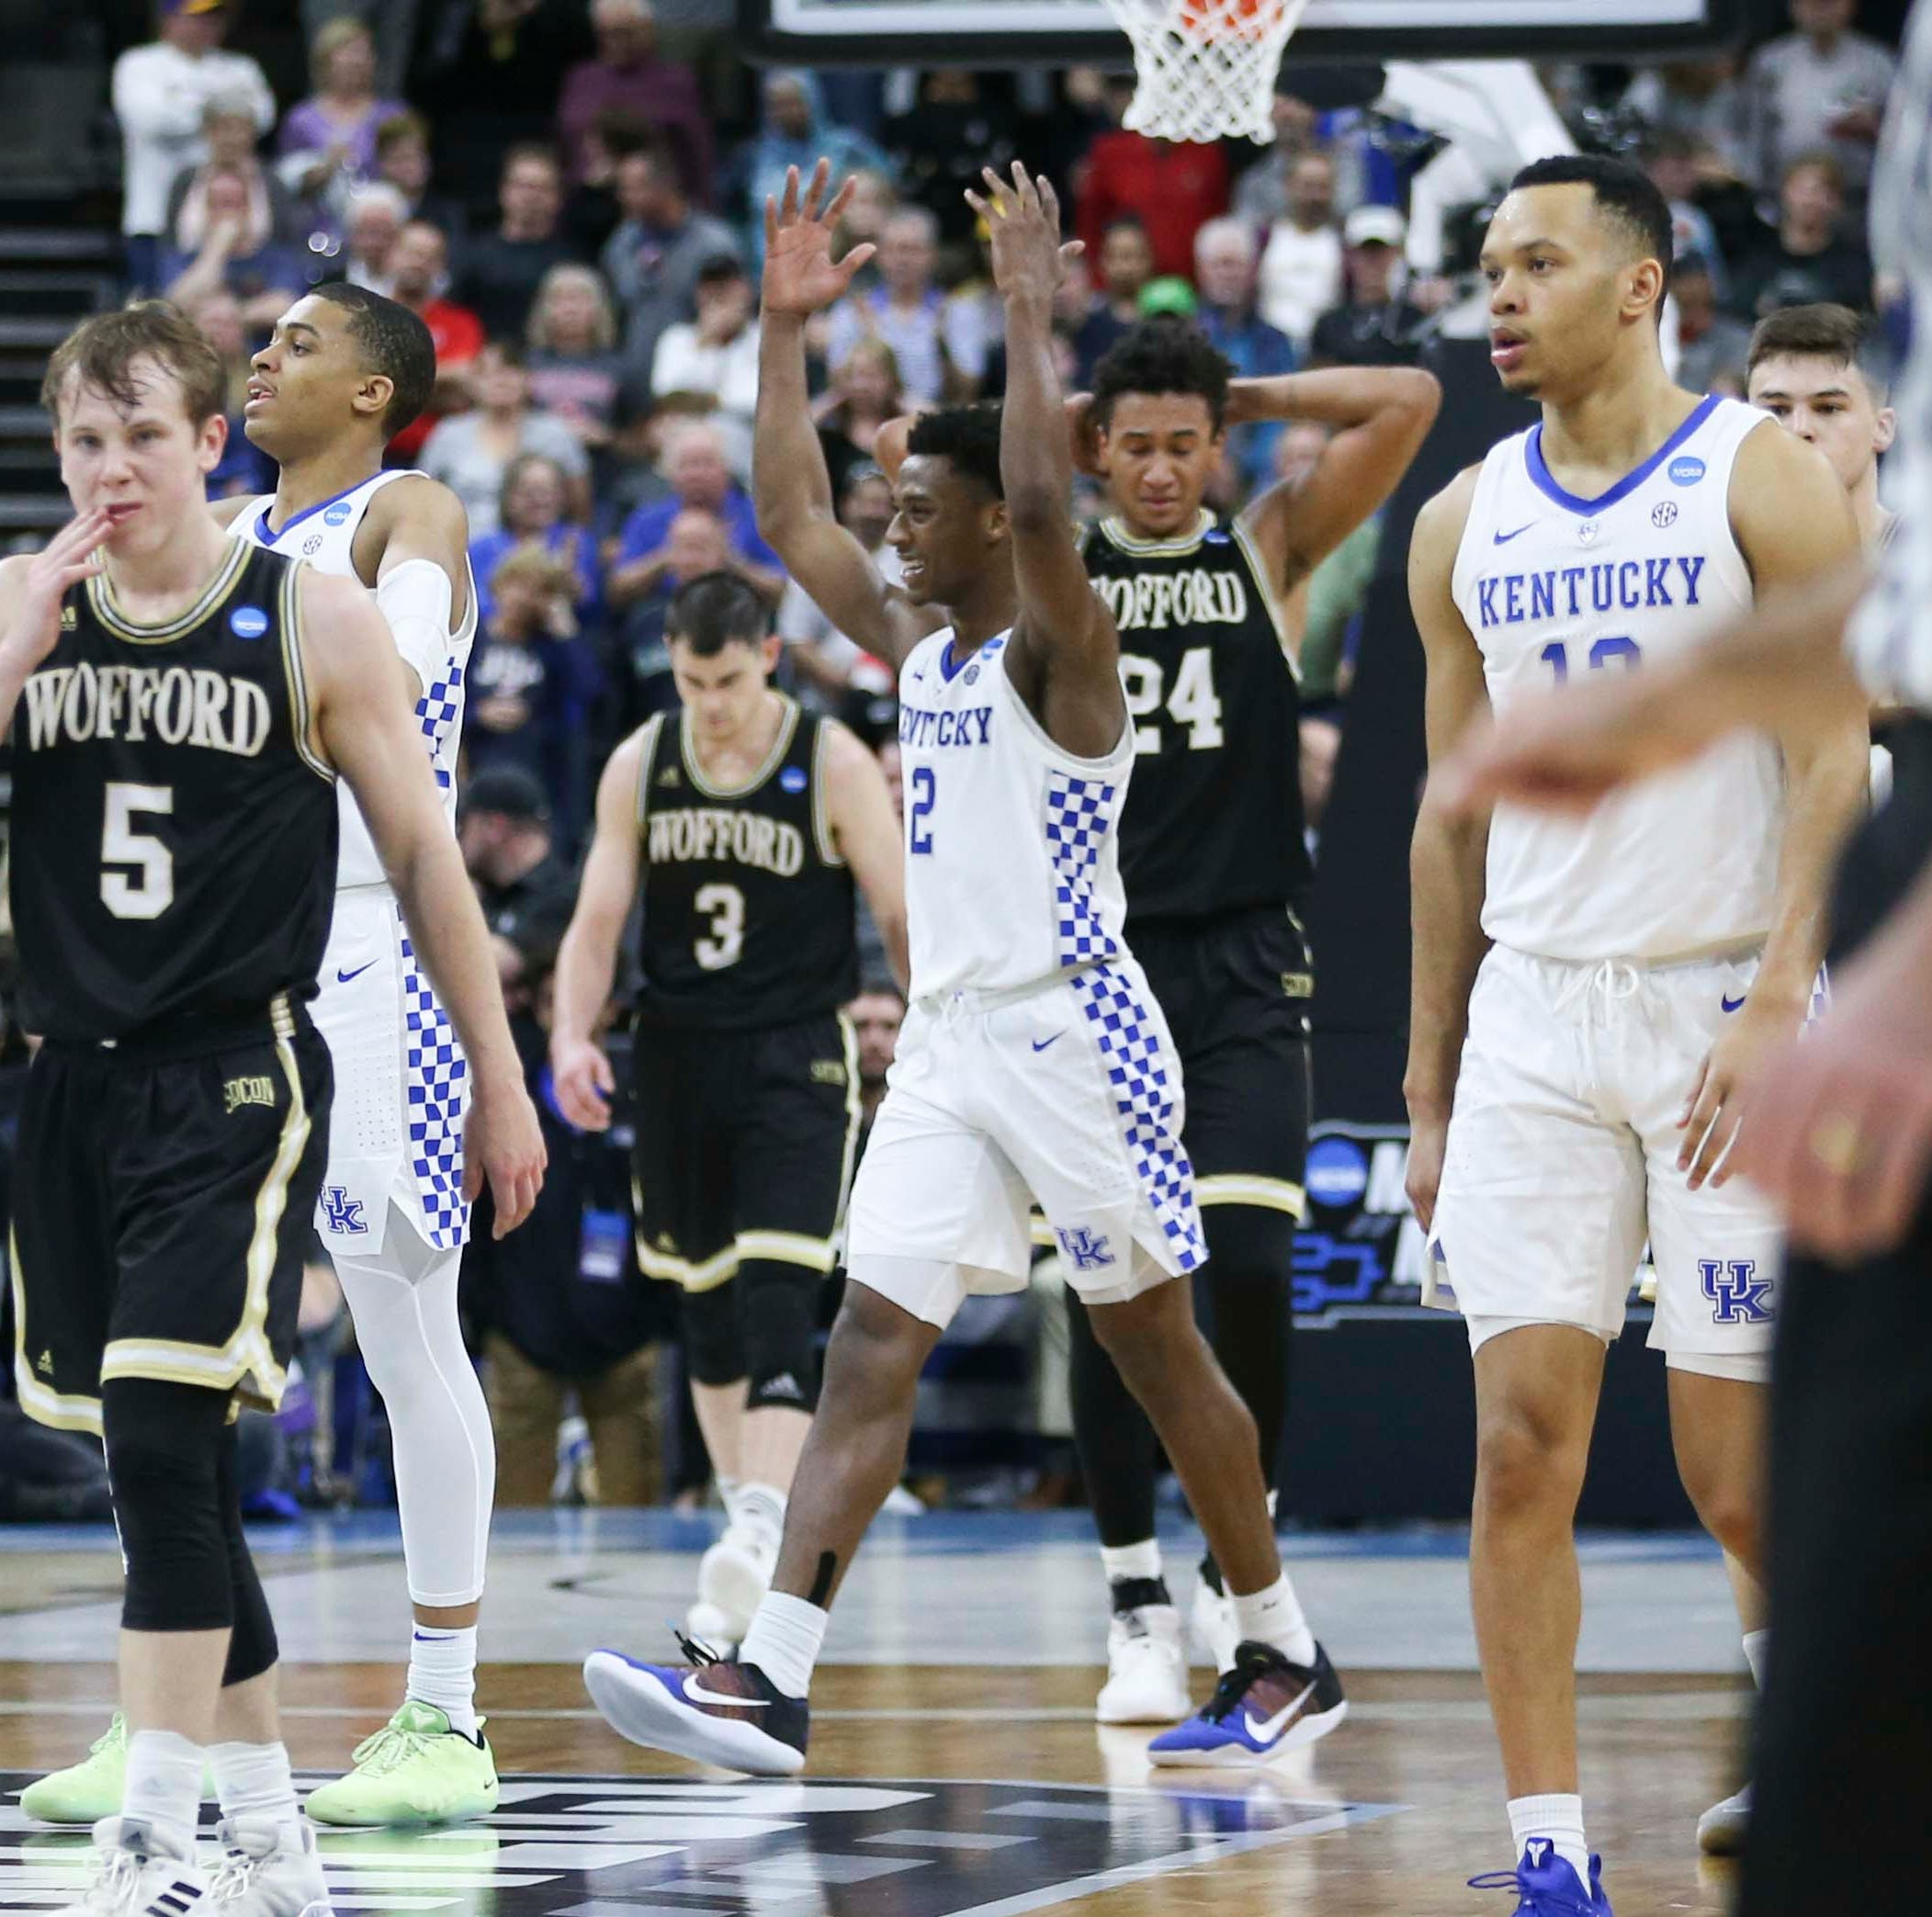 What we learned from Kentucky's NCAA tournament win over Wofford